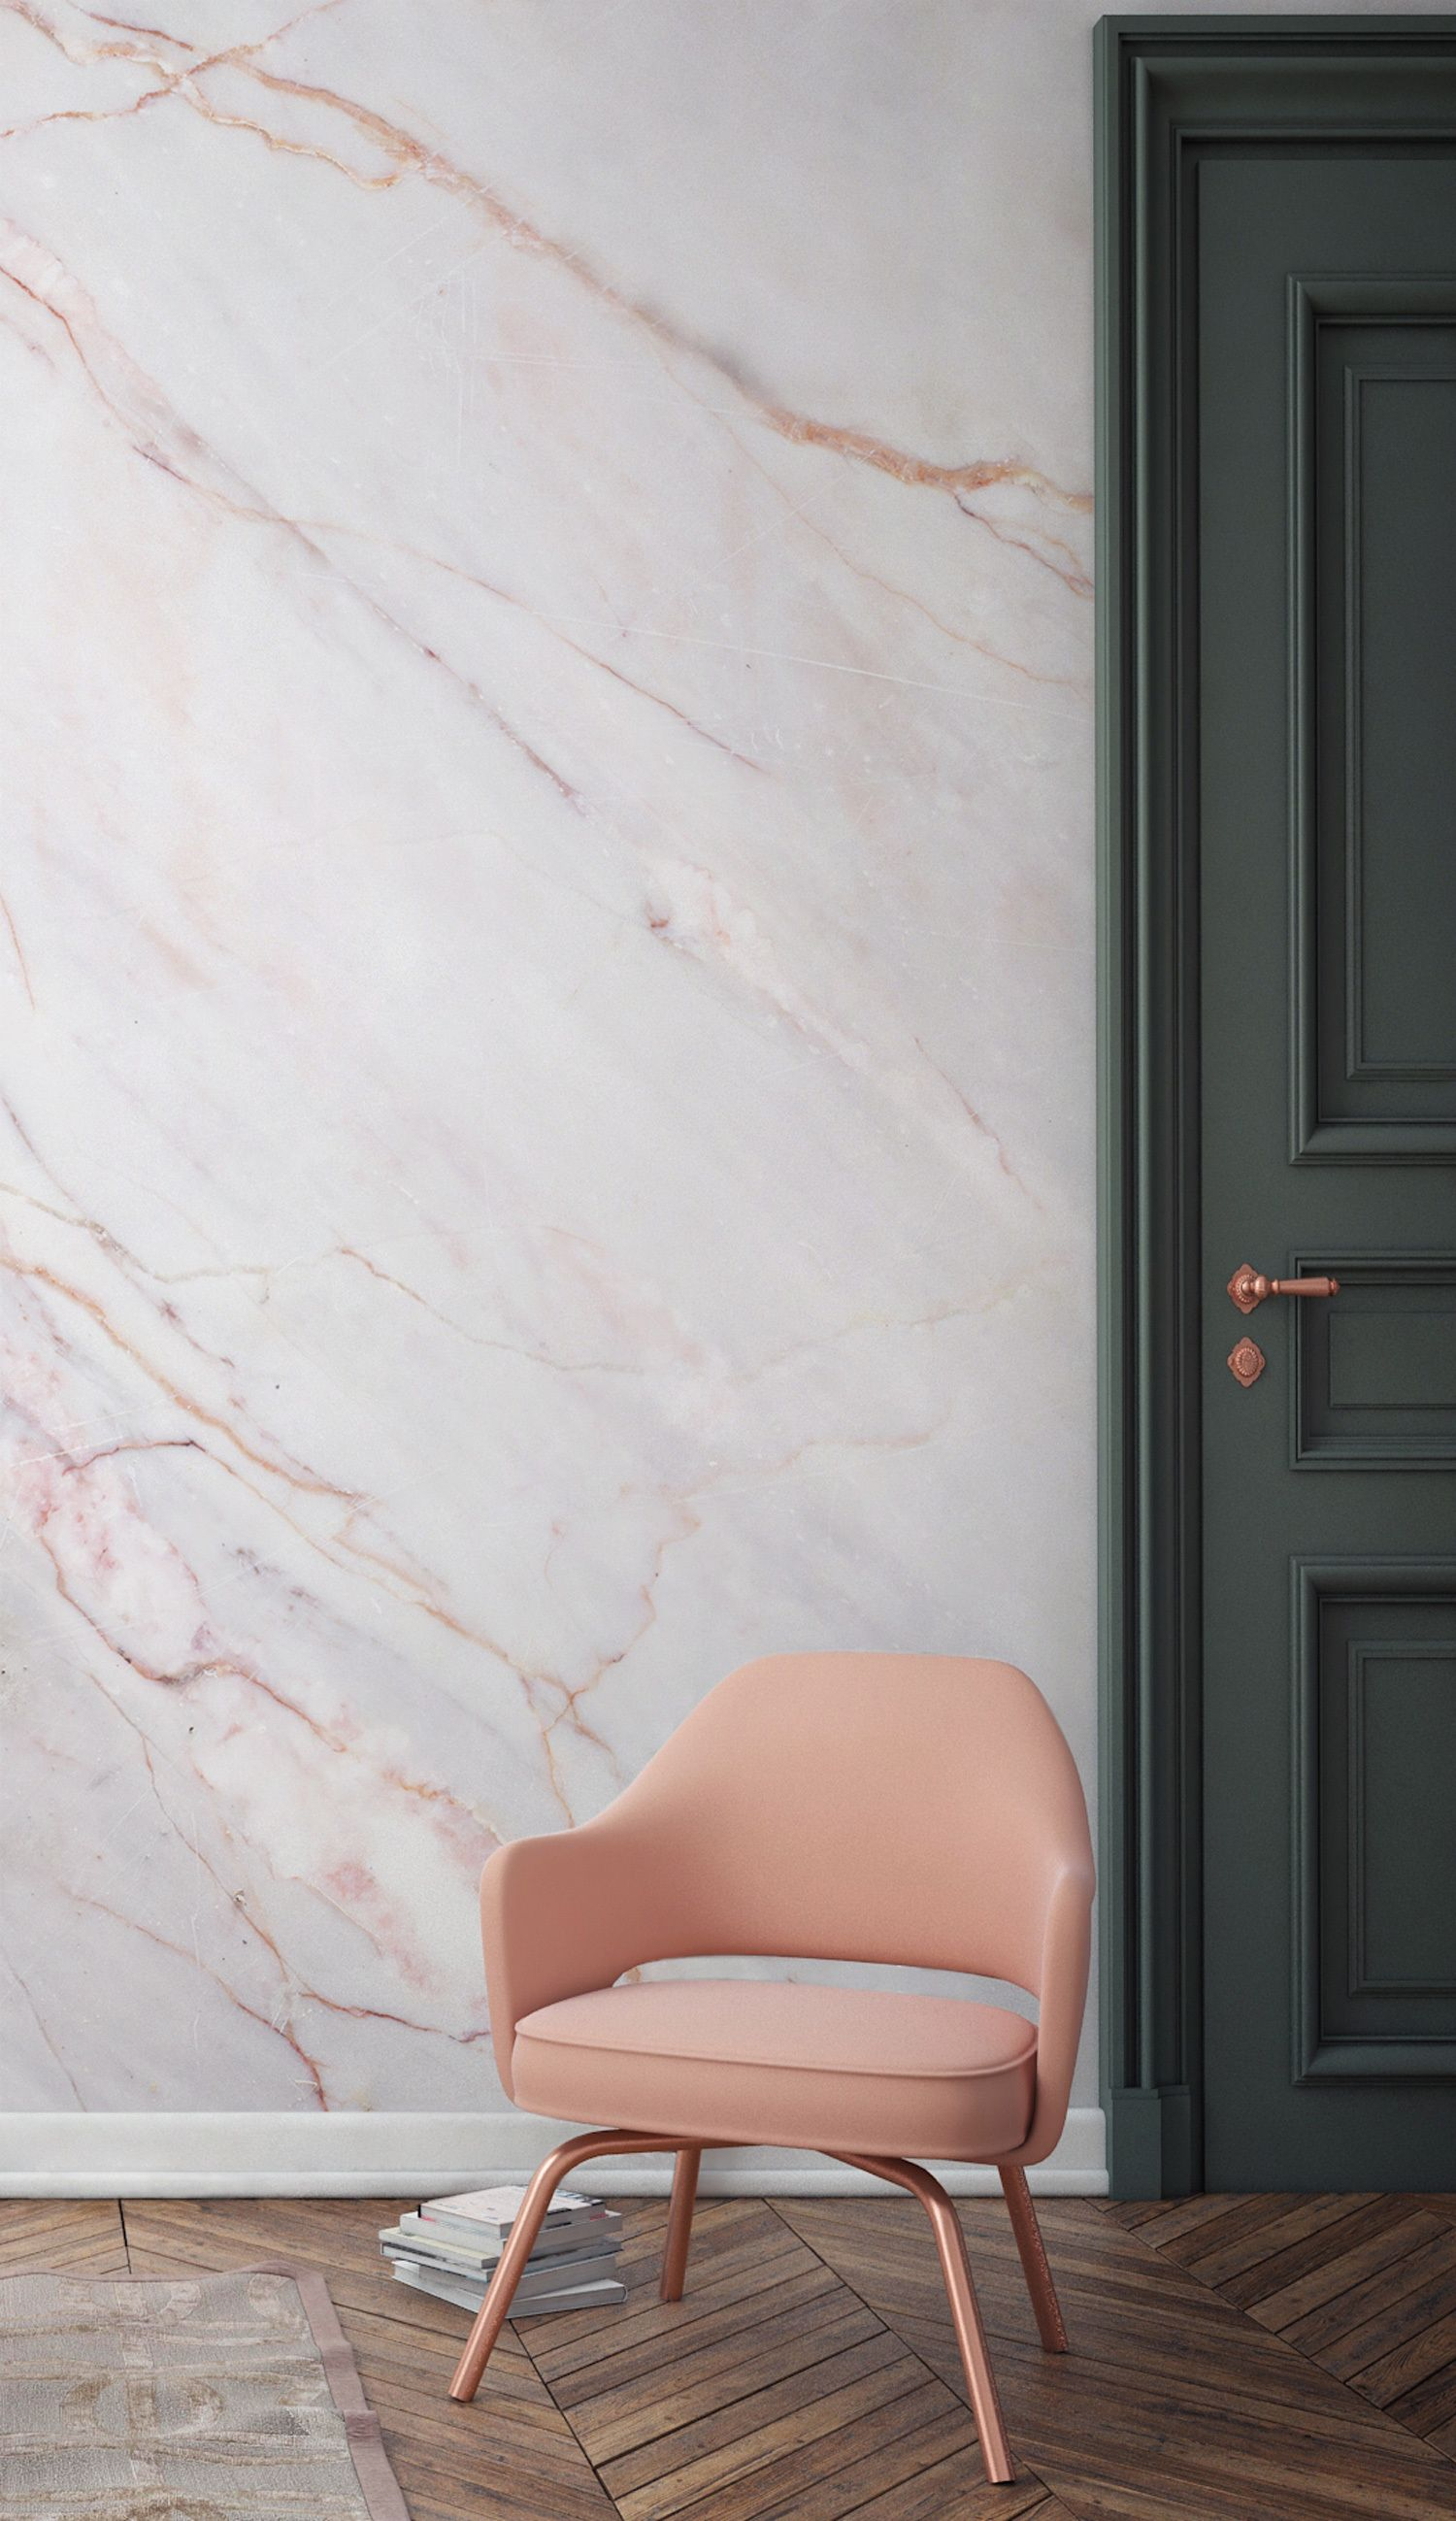 Bring A Touch Of Luxury To Your Home With This Marble Wallpaper Faint Pink Lines Draw Your Eyes To This Beautiful Feature Wall